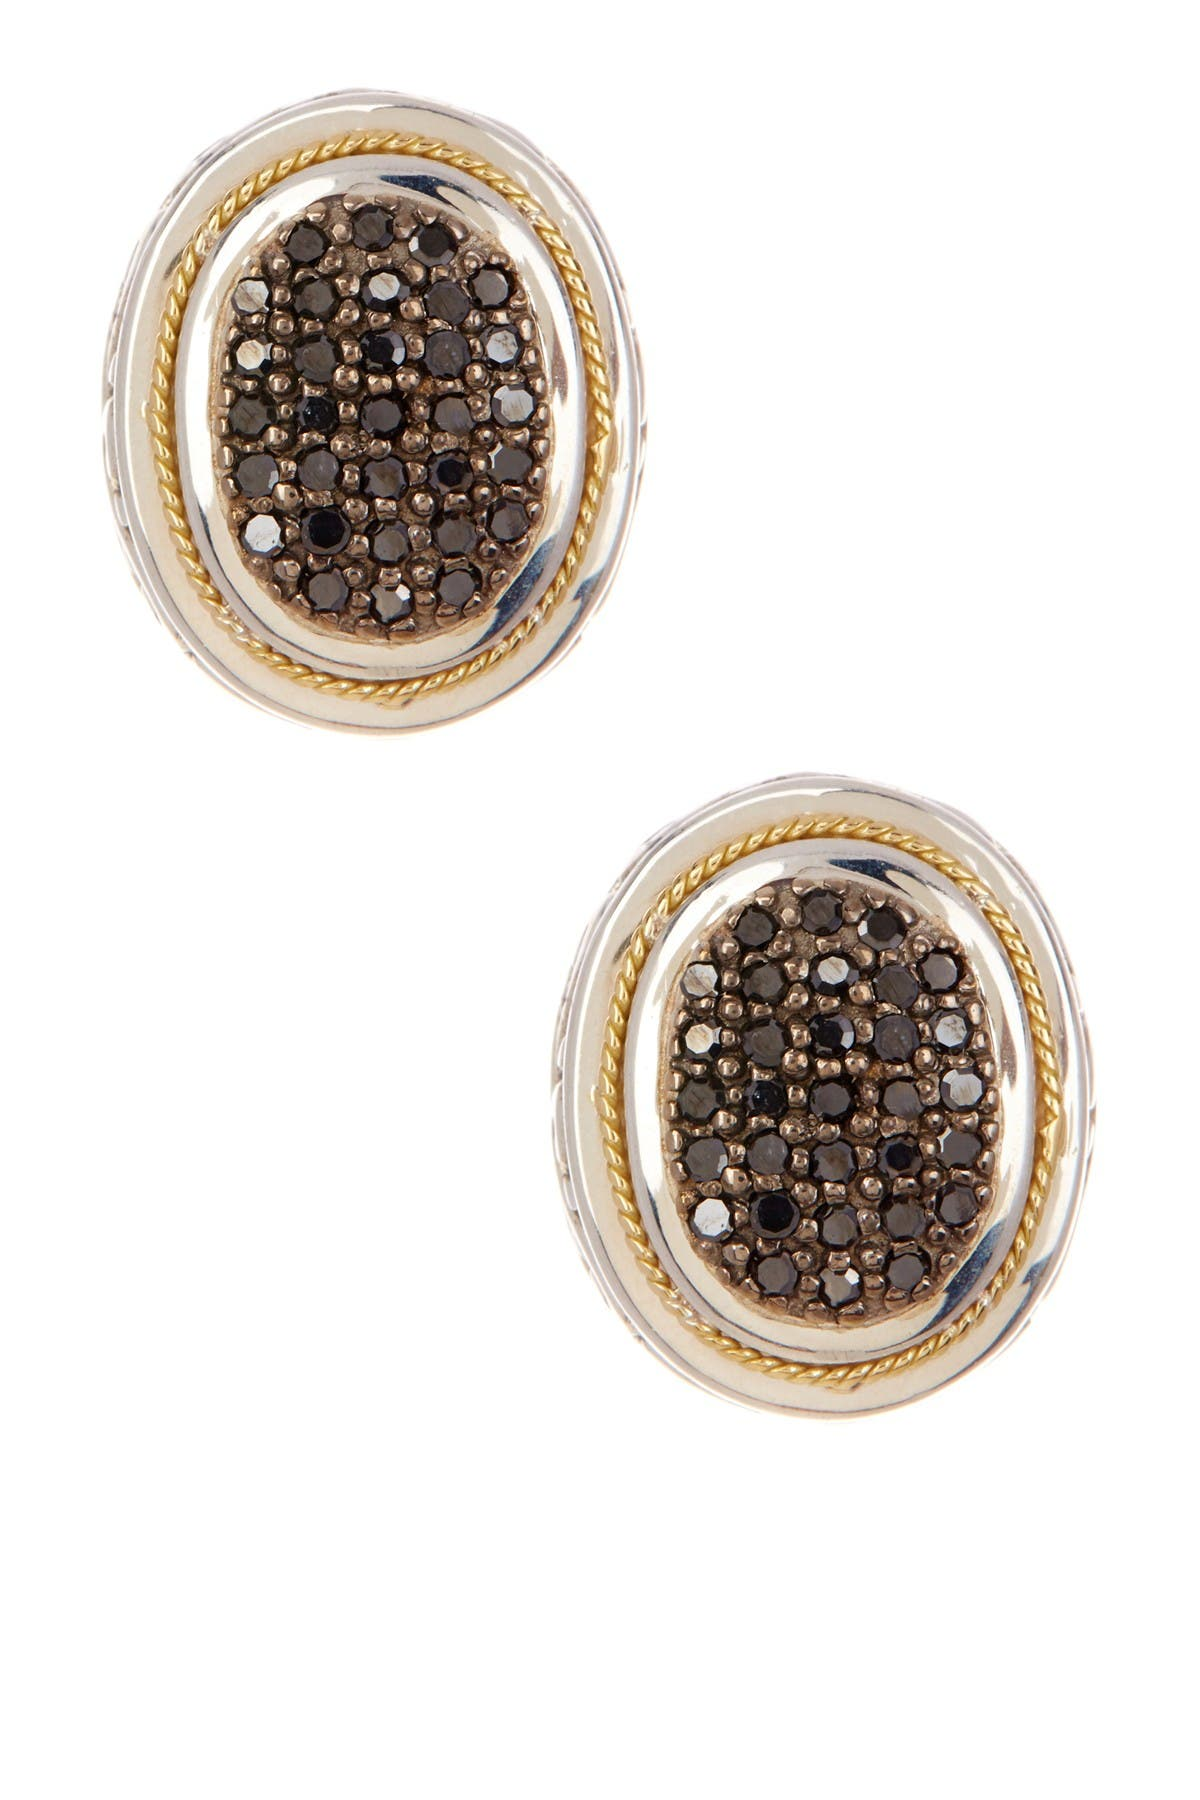 Image of Effy Sterling Silver & 18K Yellow Gold Black Diamond Stud Earrings - 0.62 ctw